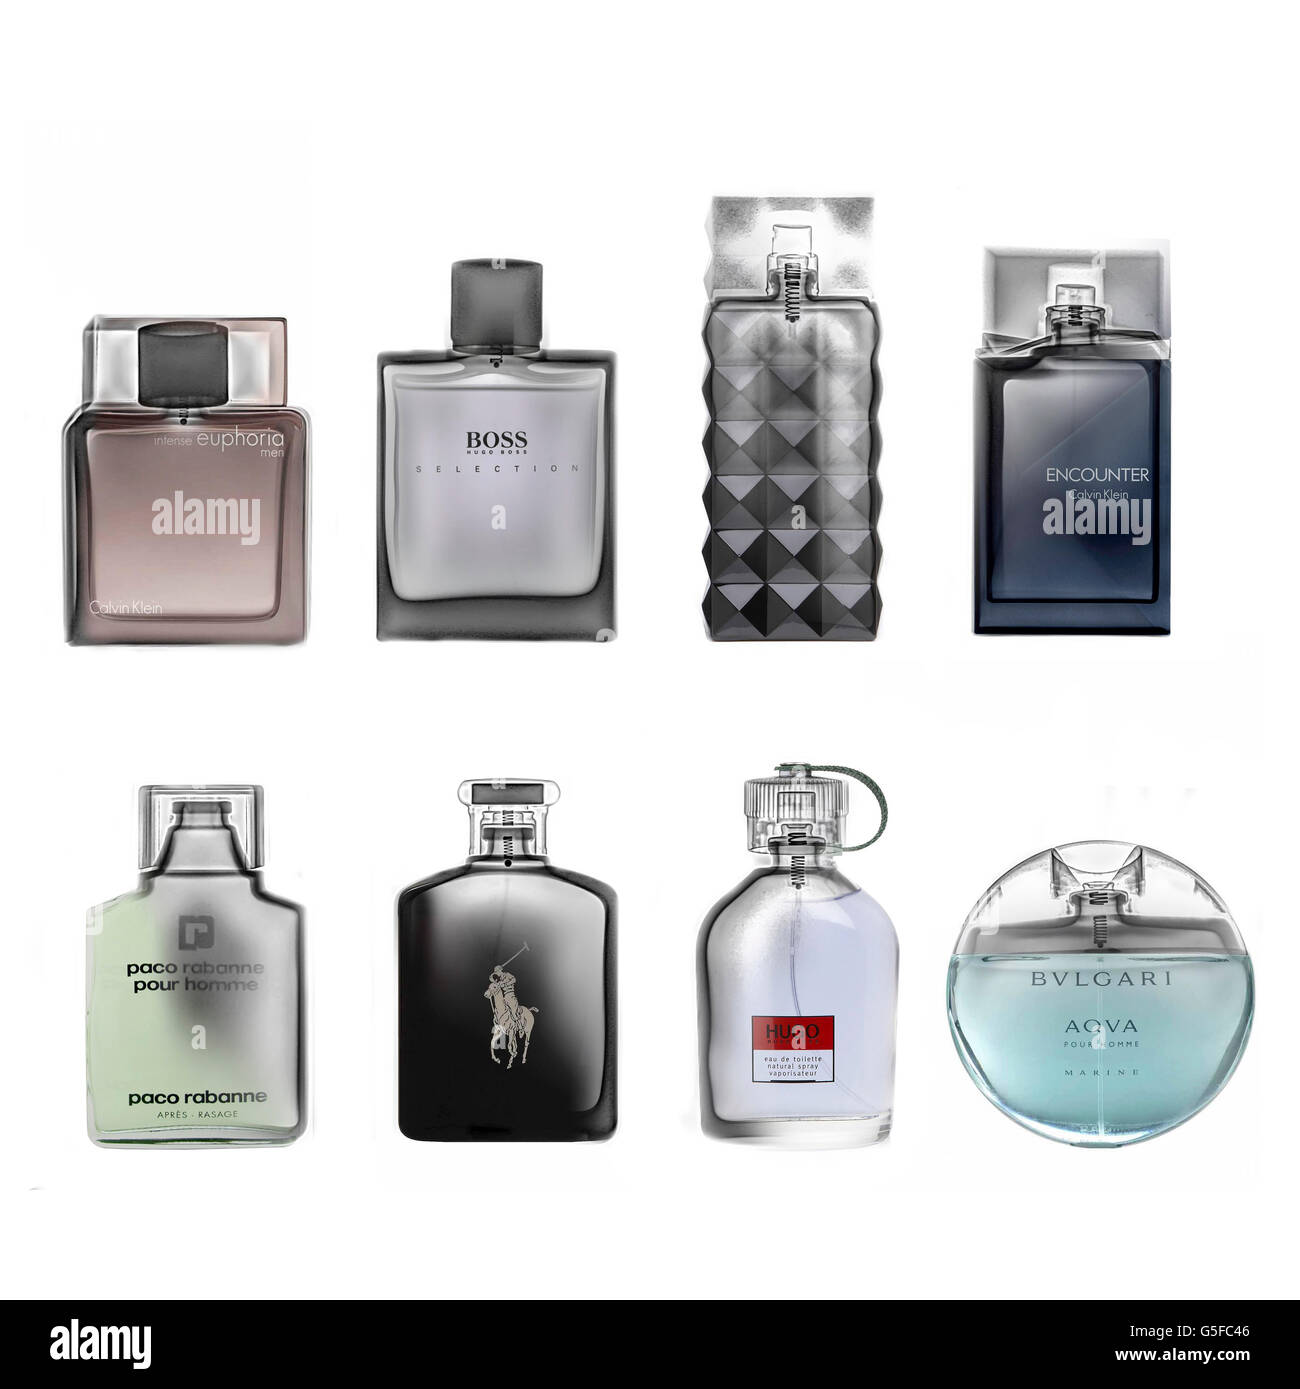 Various bottles of perfume under x-ray - Stock Image